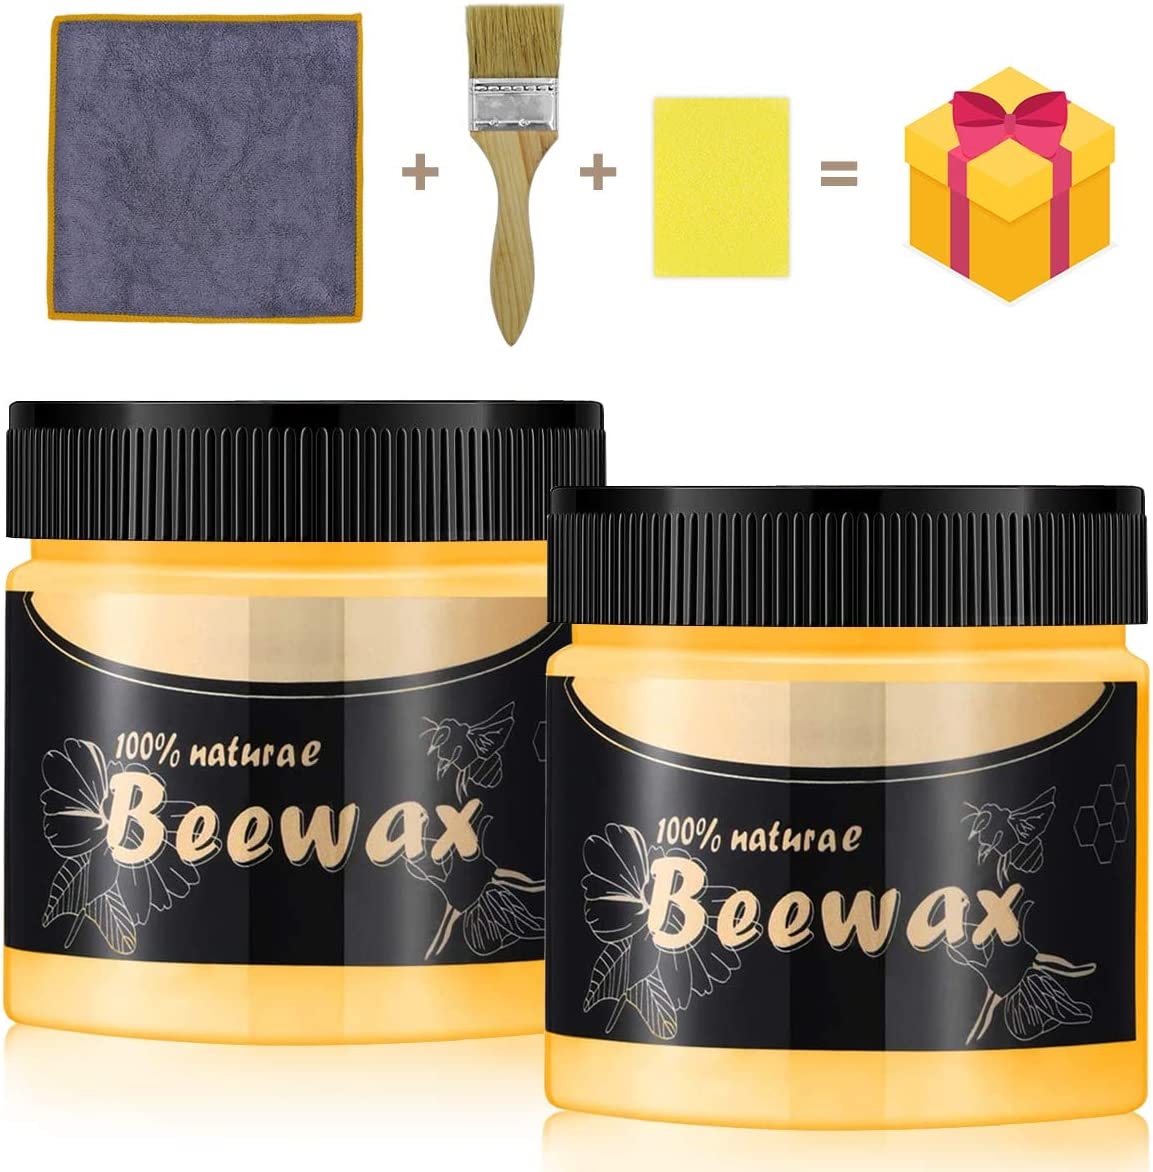 Wood Seasoning Beewax, 2 Pcs Natural Traditional Beeswax Furniture Polish with Brush, Waxed Cloth and Large Sponge for Wood, Furniture, Floor, Tables, Chairs, Cabinets